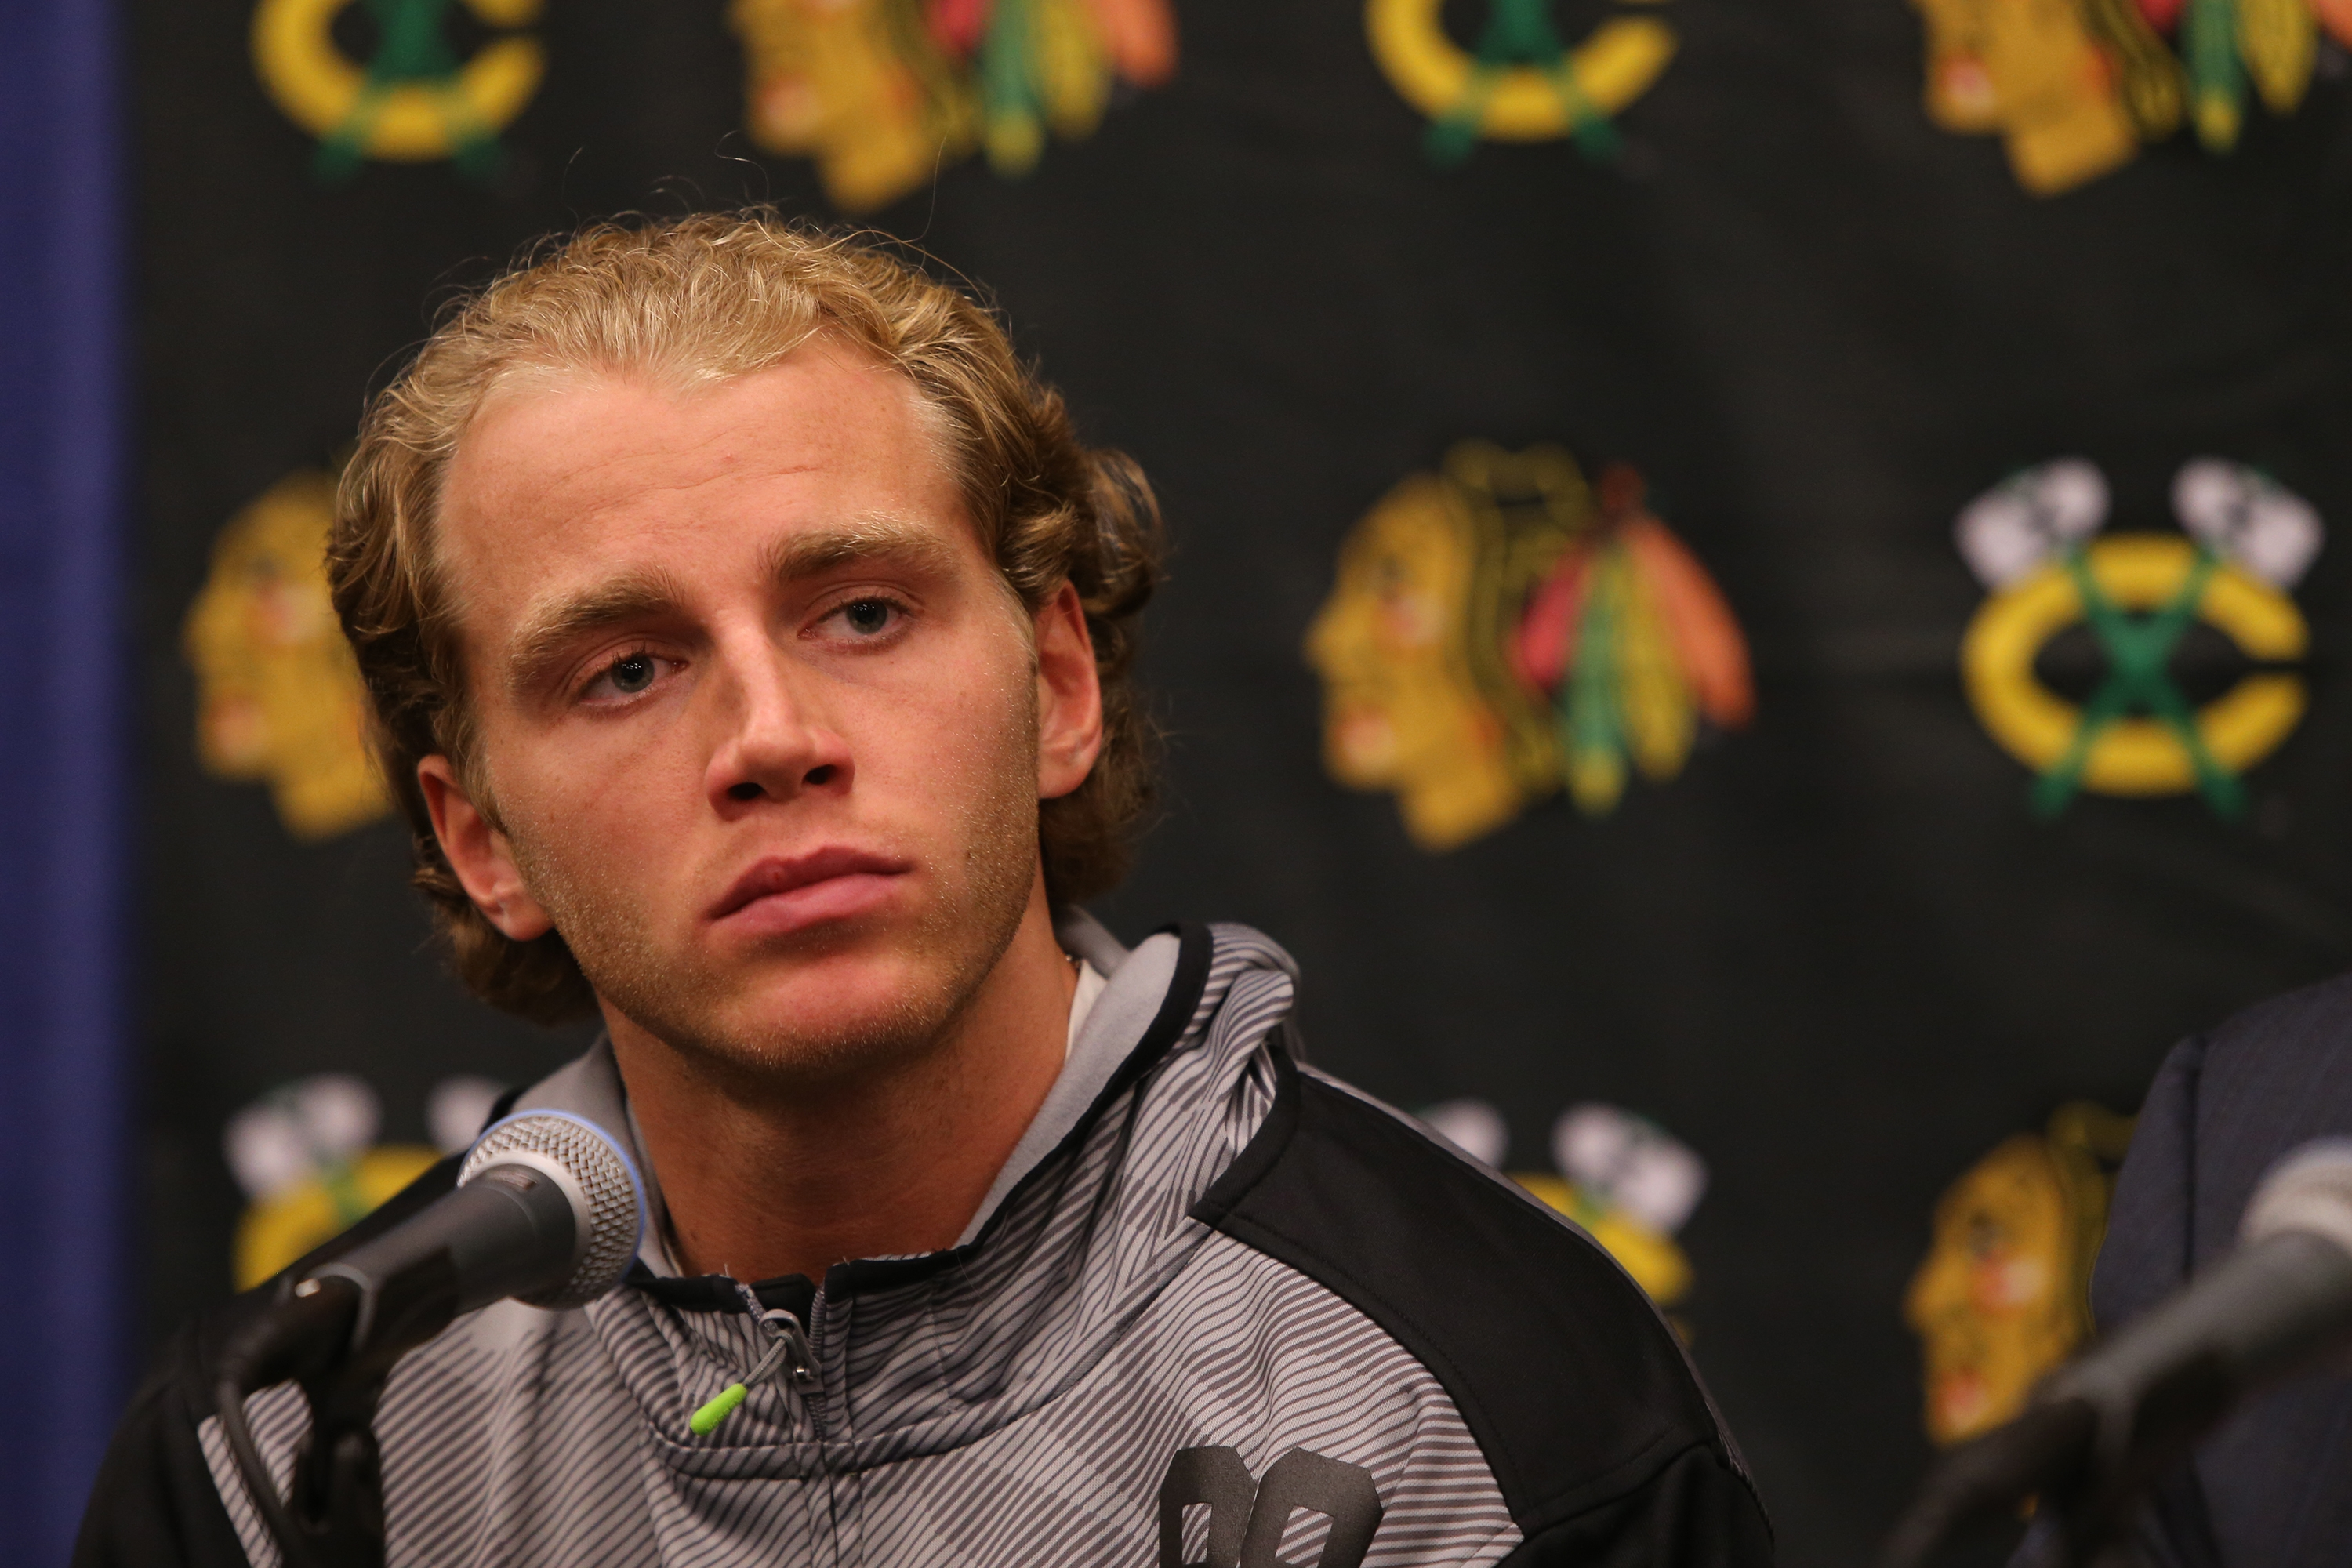 Patrick Kane is seen at a news conference before the start of the Chicago Blackhawks training camp on Sept. 17. (Chicago Tribune/TNS)